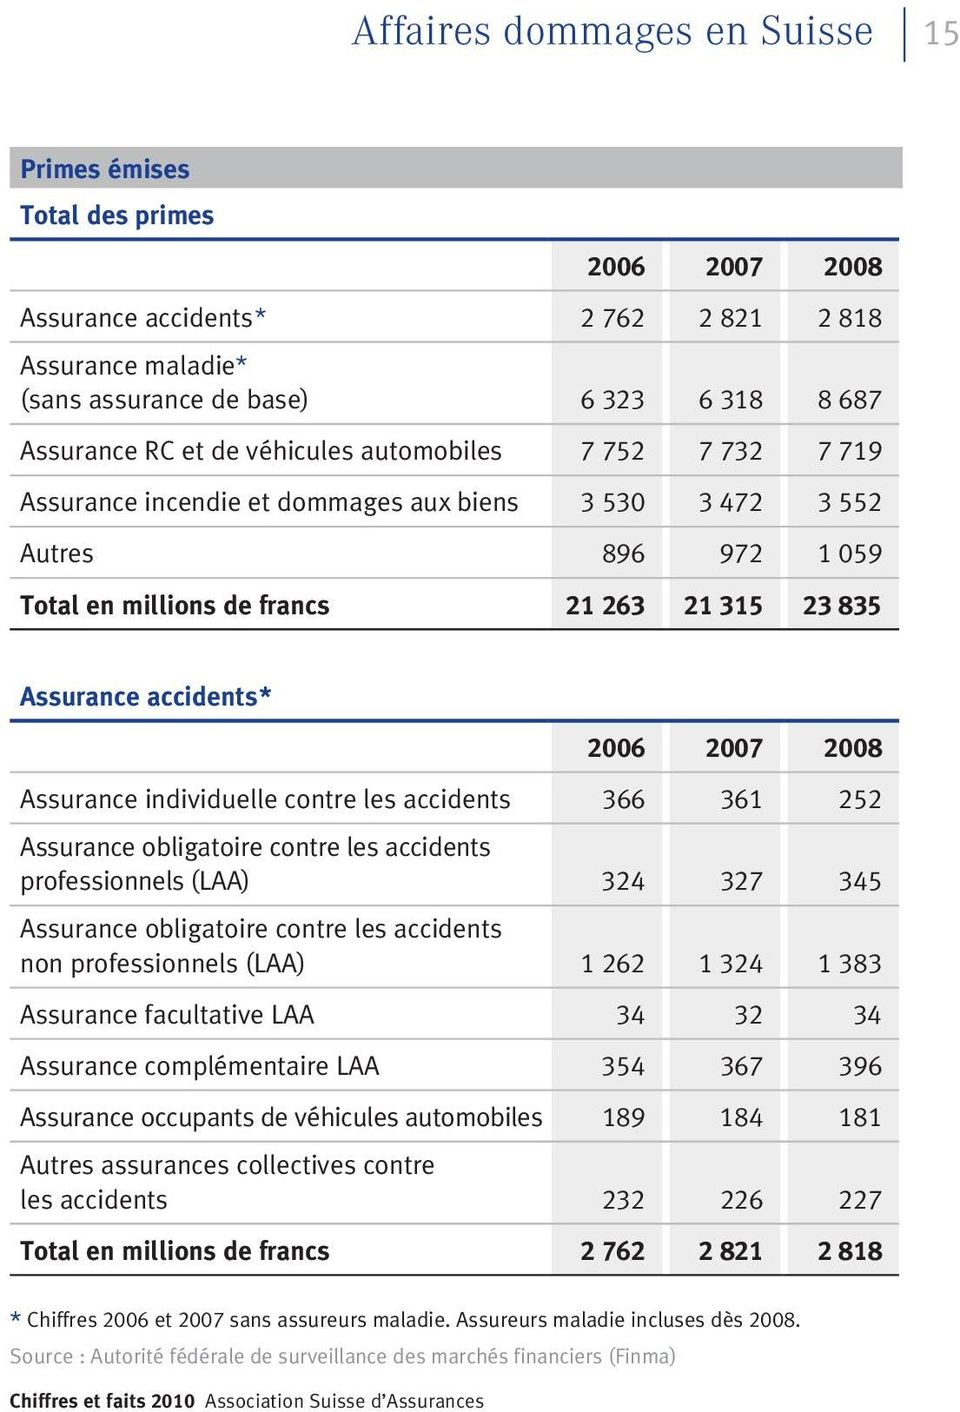 accidents* Assurance individuelle contre les accidents 366 361 252 professionnels (LAA) 324 327 345 non professionnels (LAA) 1 262 1 324 1 383 Assurance facultative LAA 34 32 34